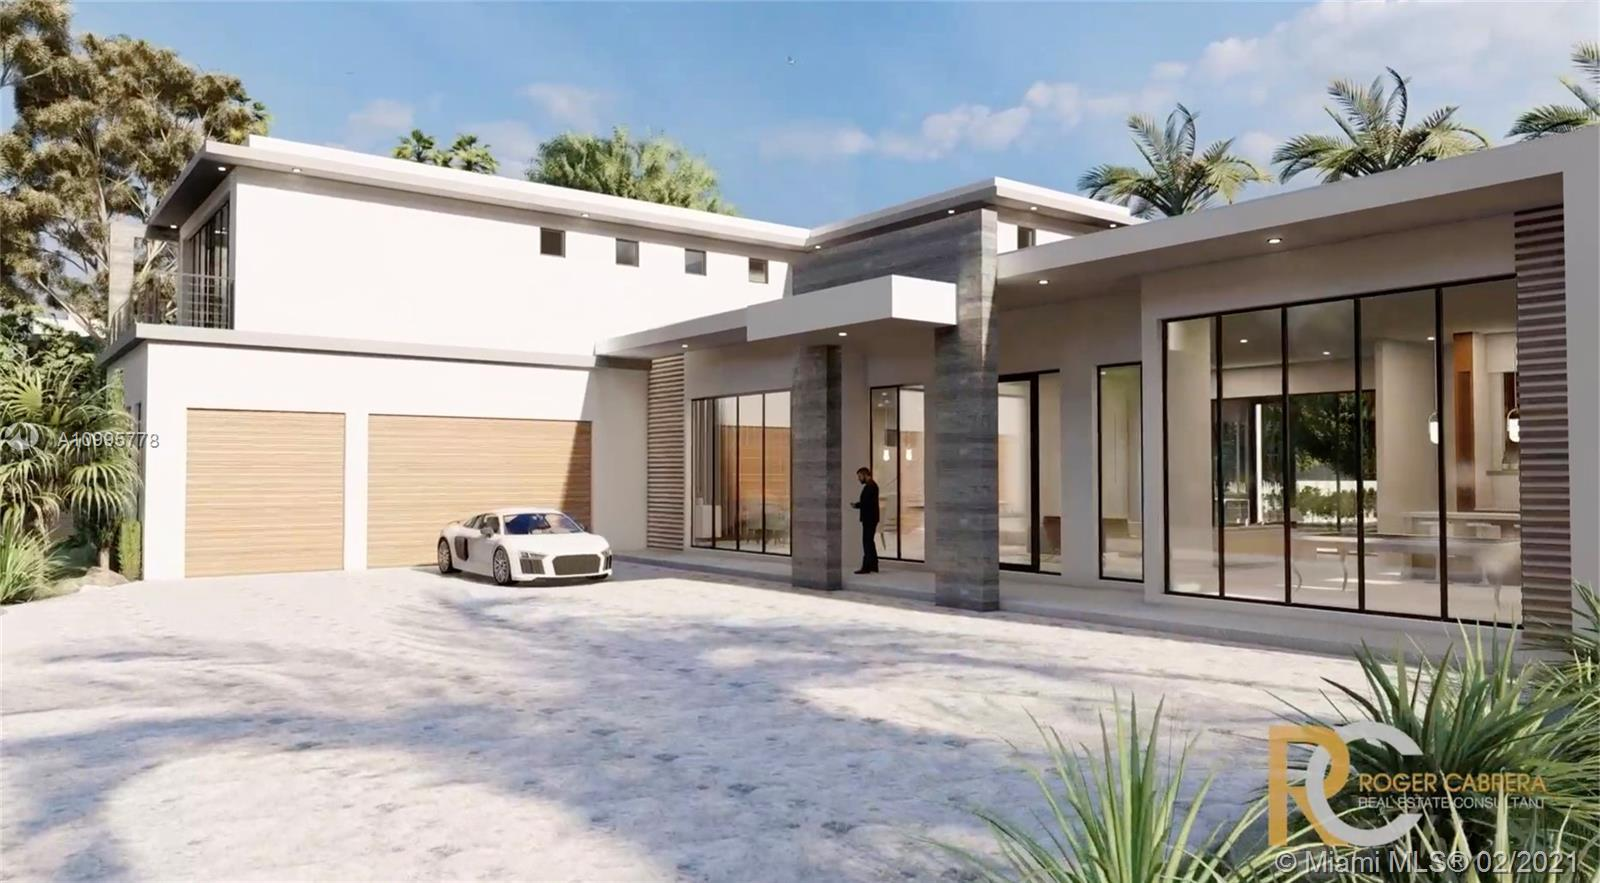 PRICE ADJUSTMENT MODERN GEM. Welcome to this stunning NEW CONSTRUCTION home in the sought after Nort